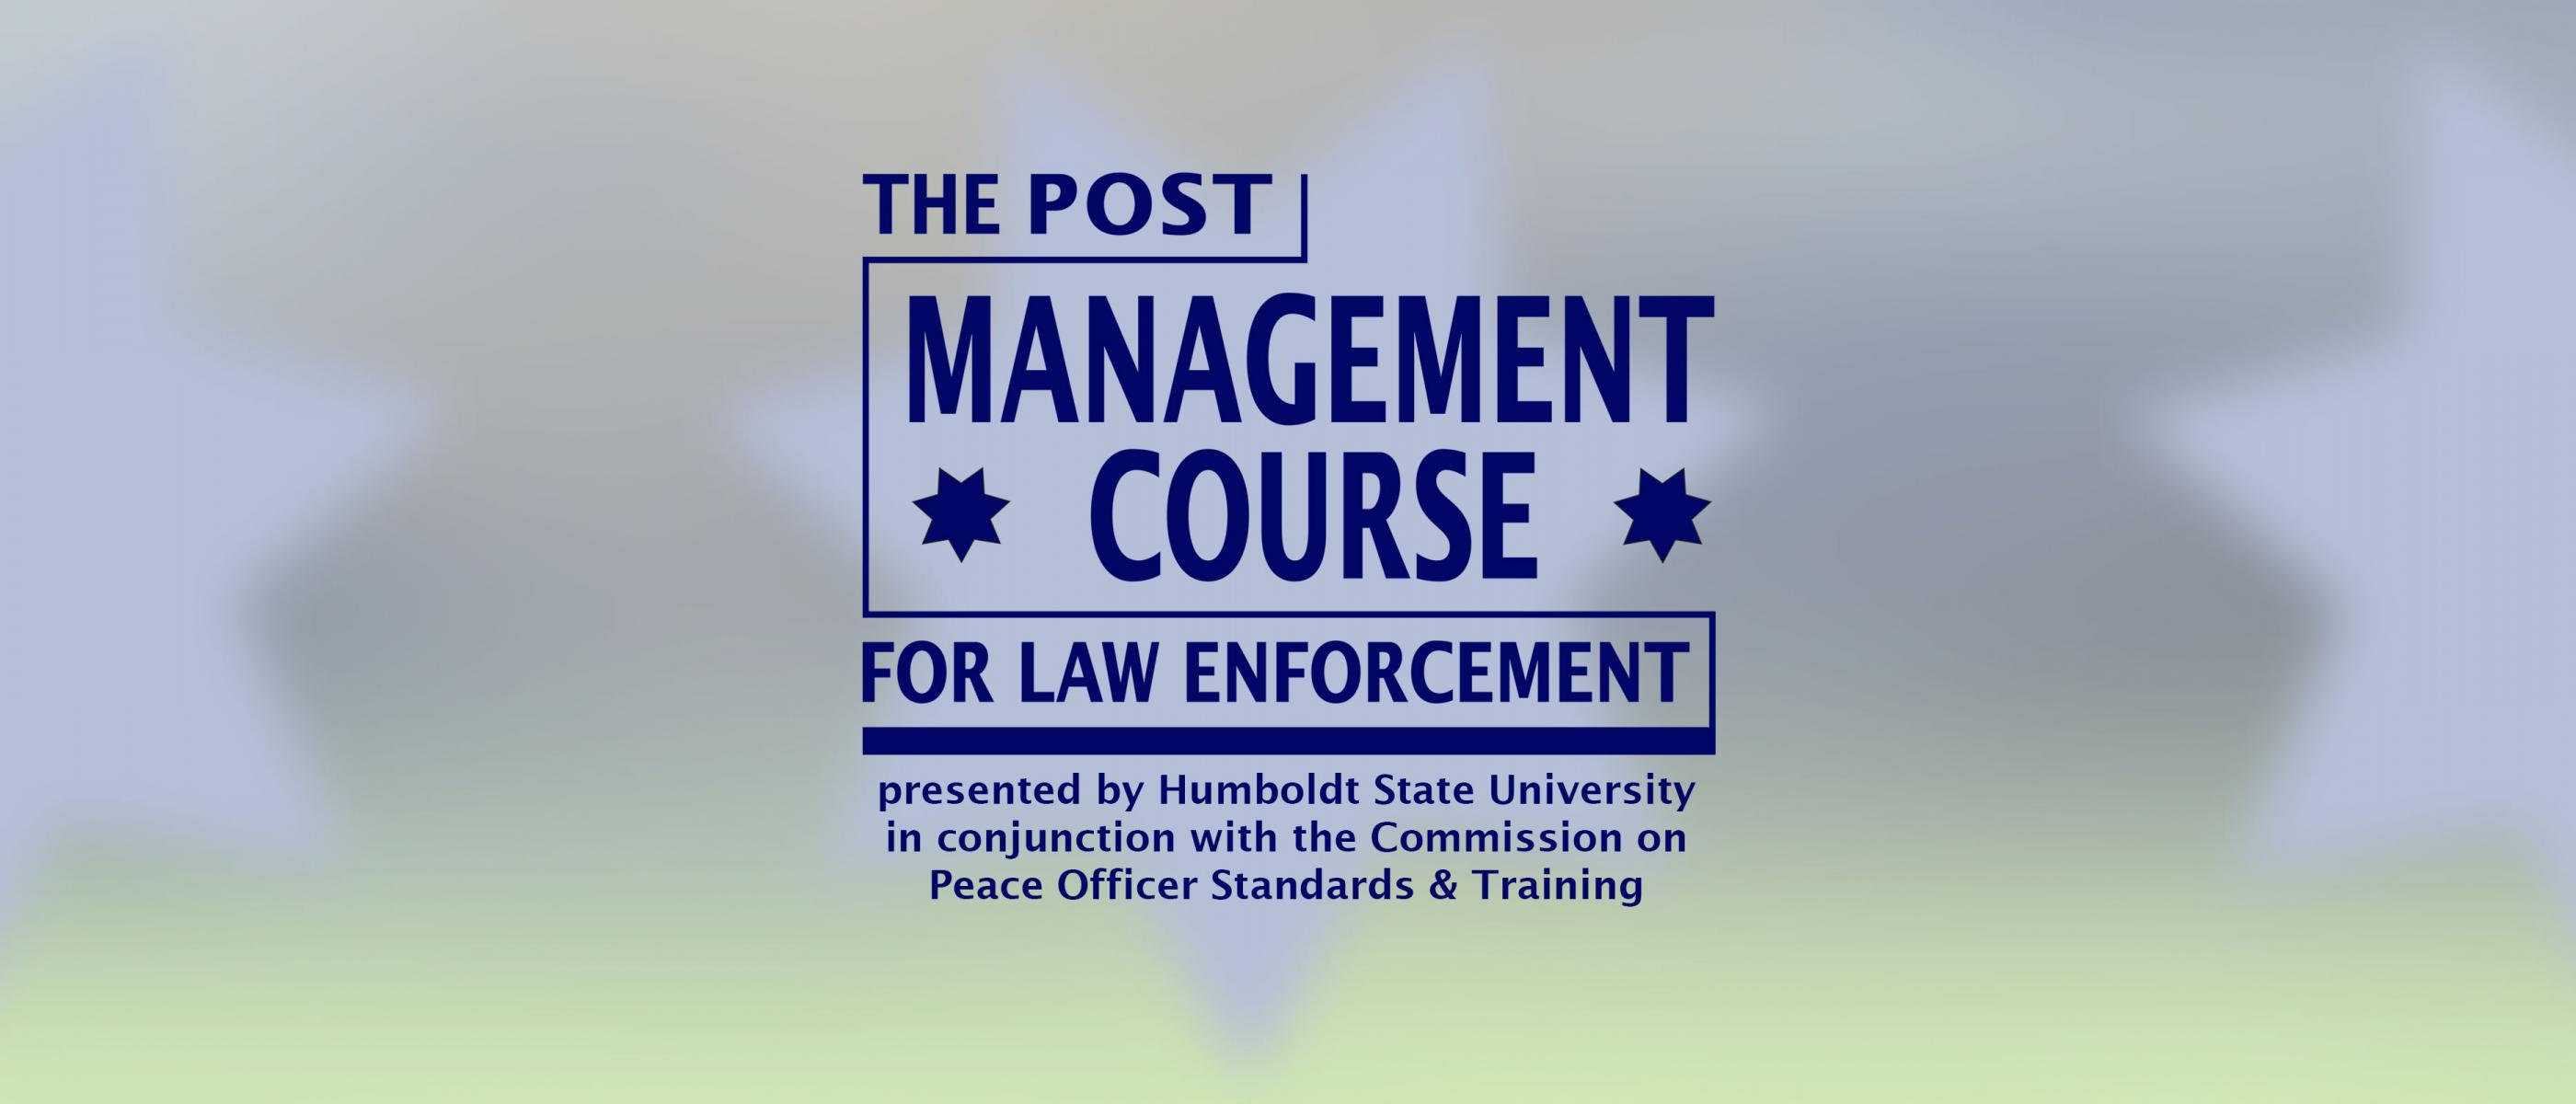 The POST Management Course for Law Enforcement